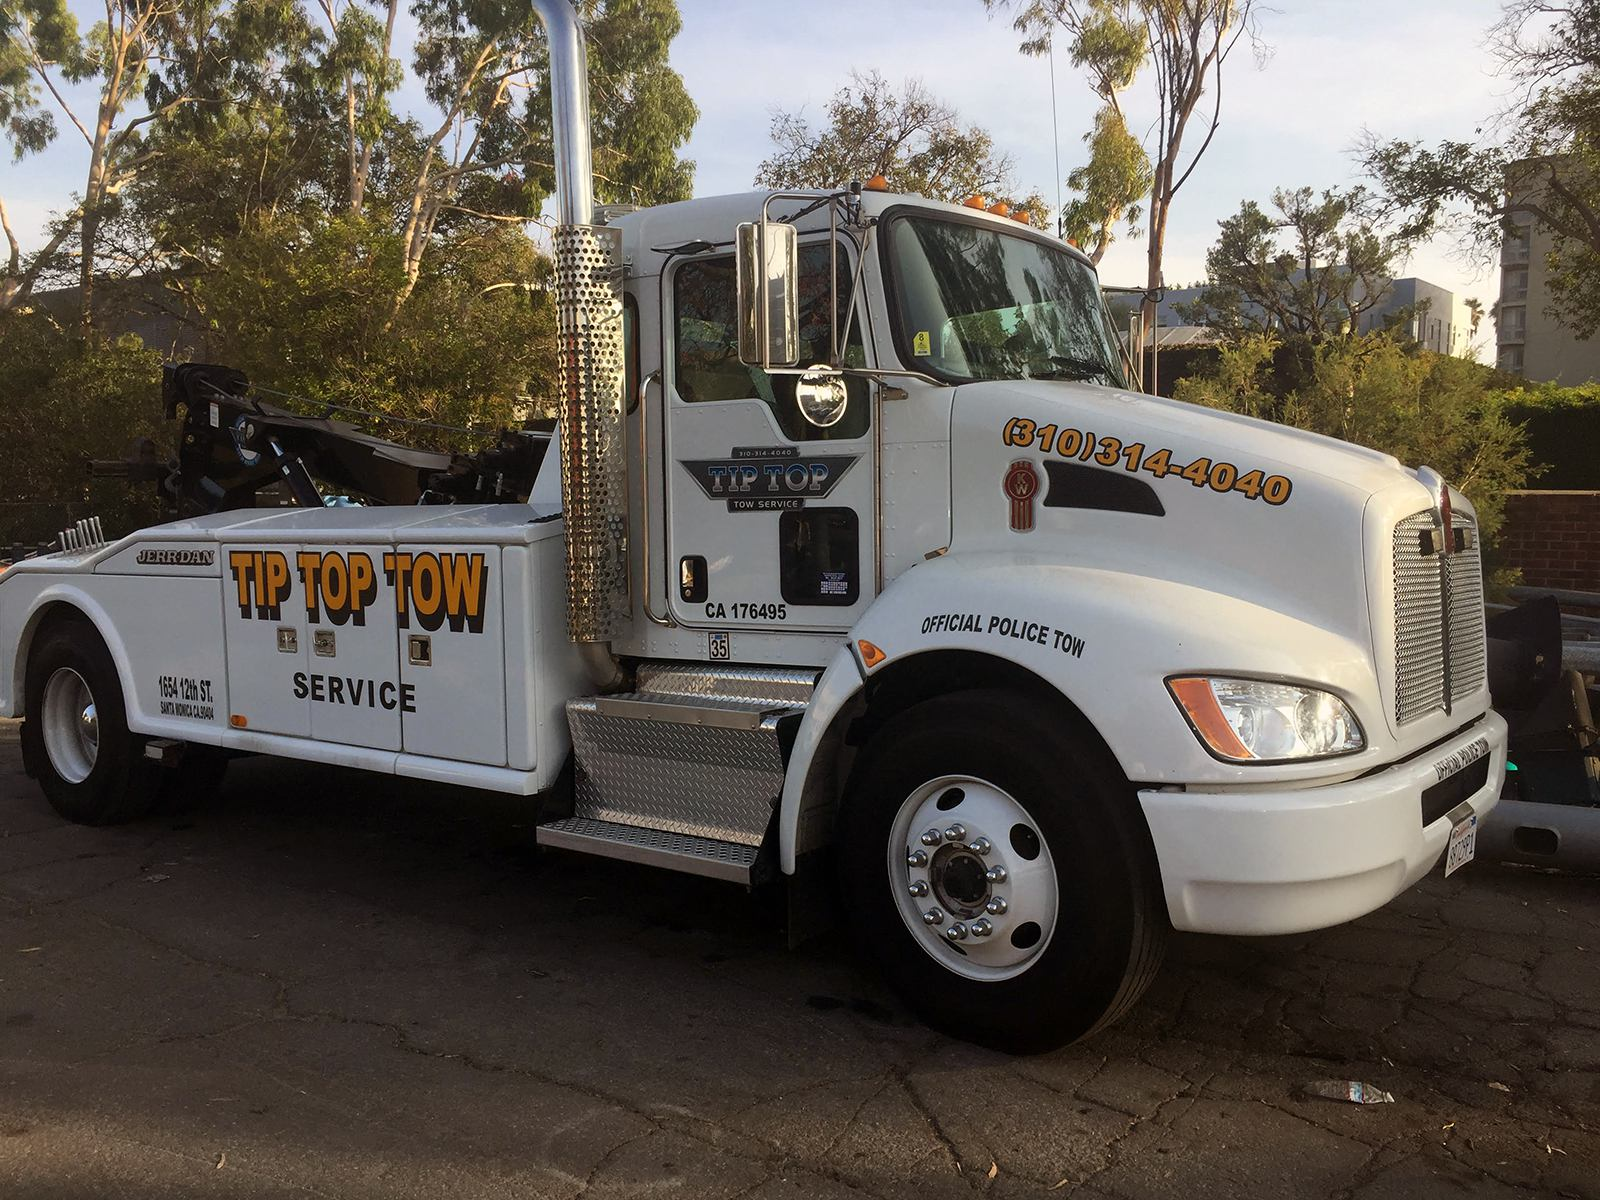 so you tip tow truck drivers